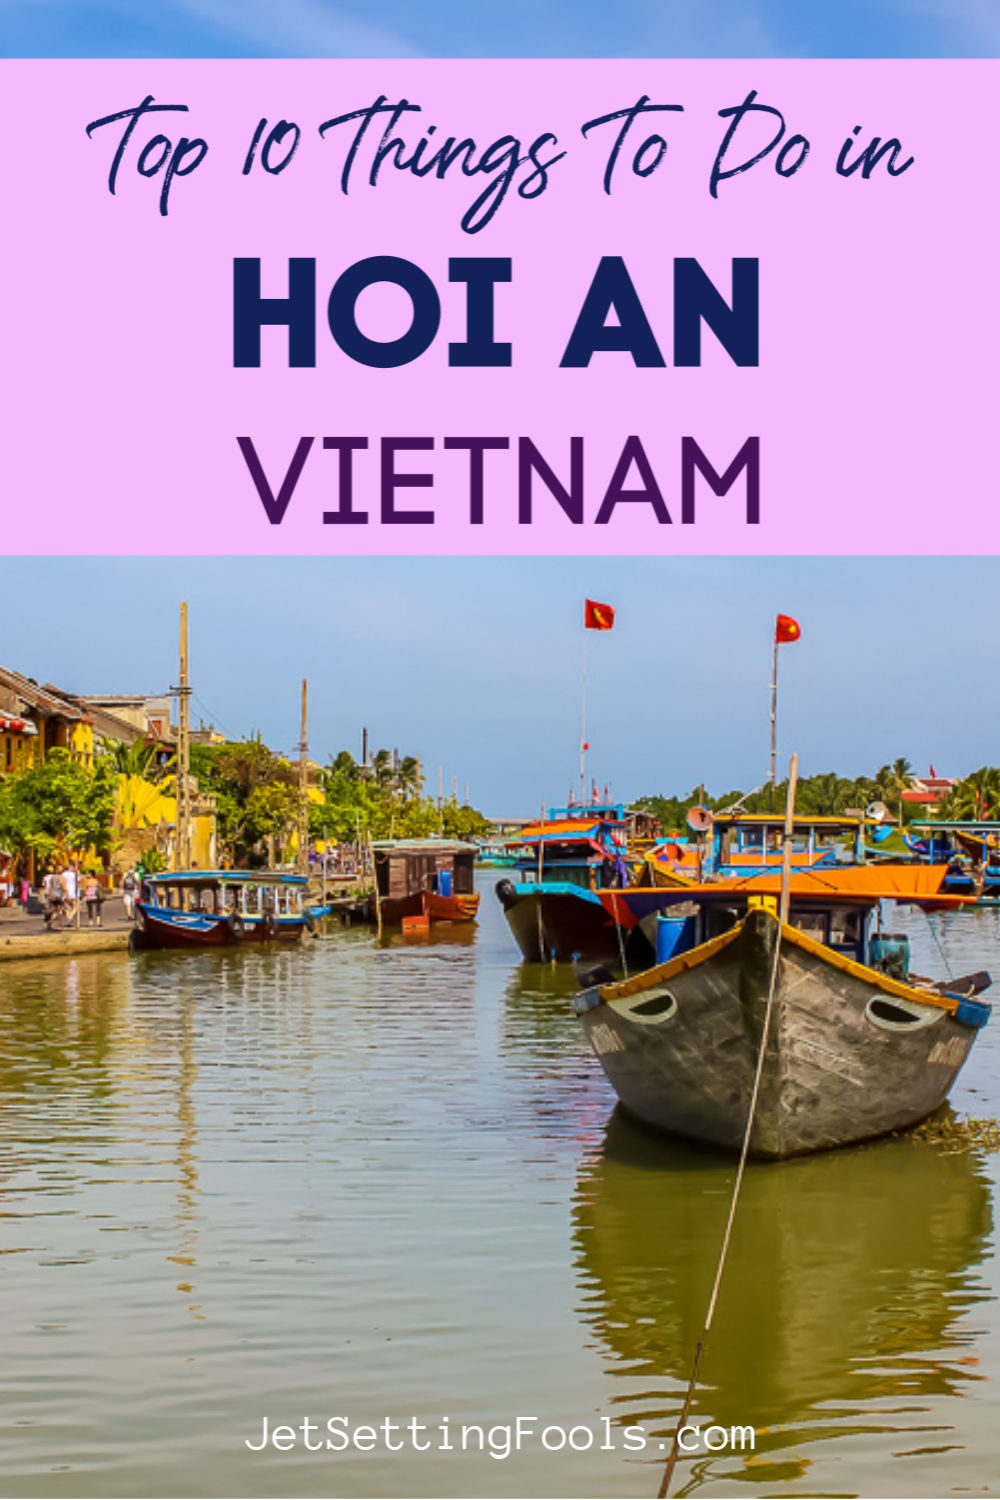 10 Things To Do in Hoi An, Vietnam by JetSettingFools.com